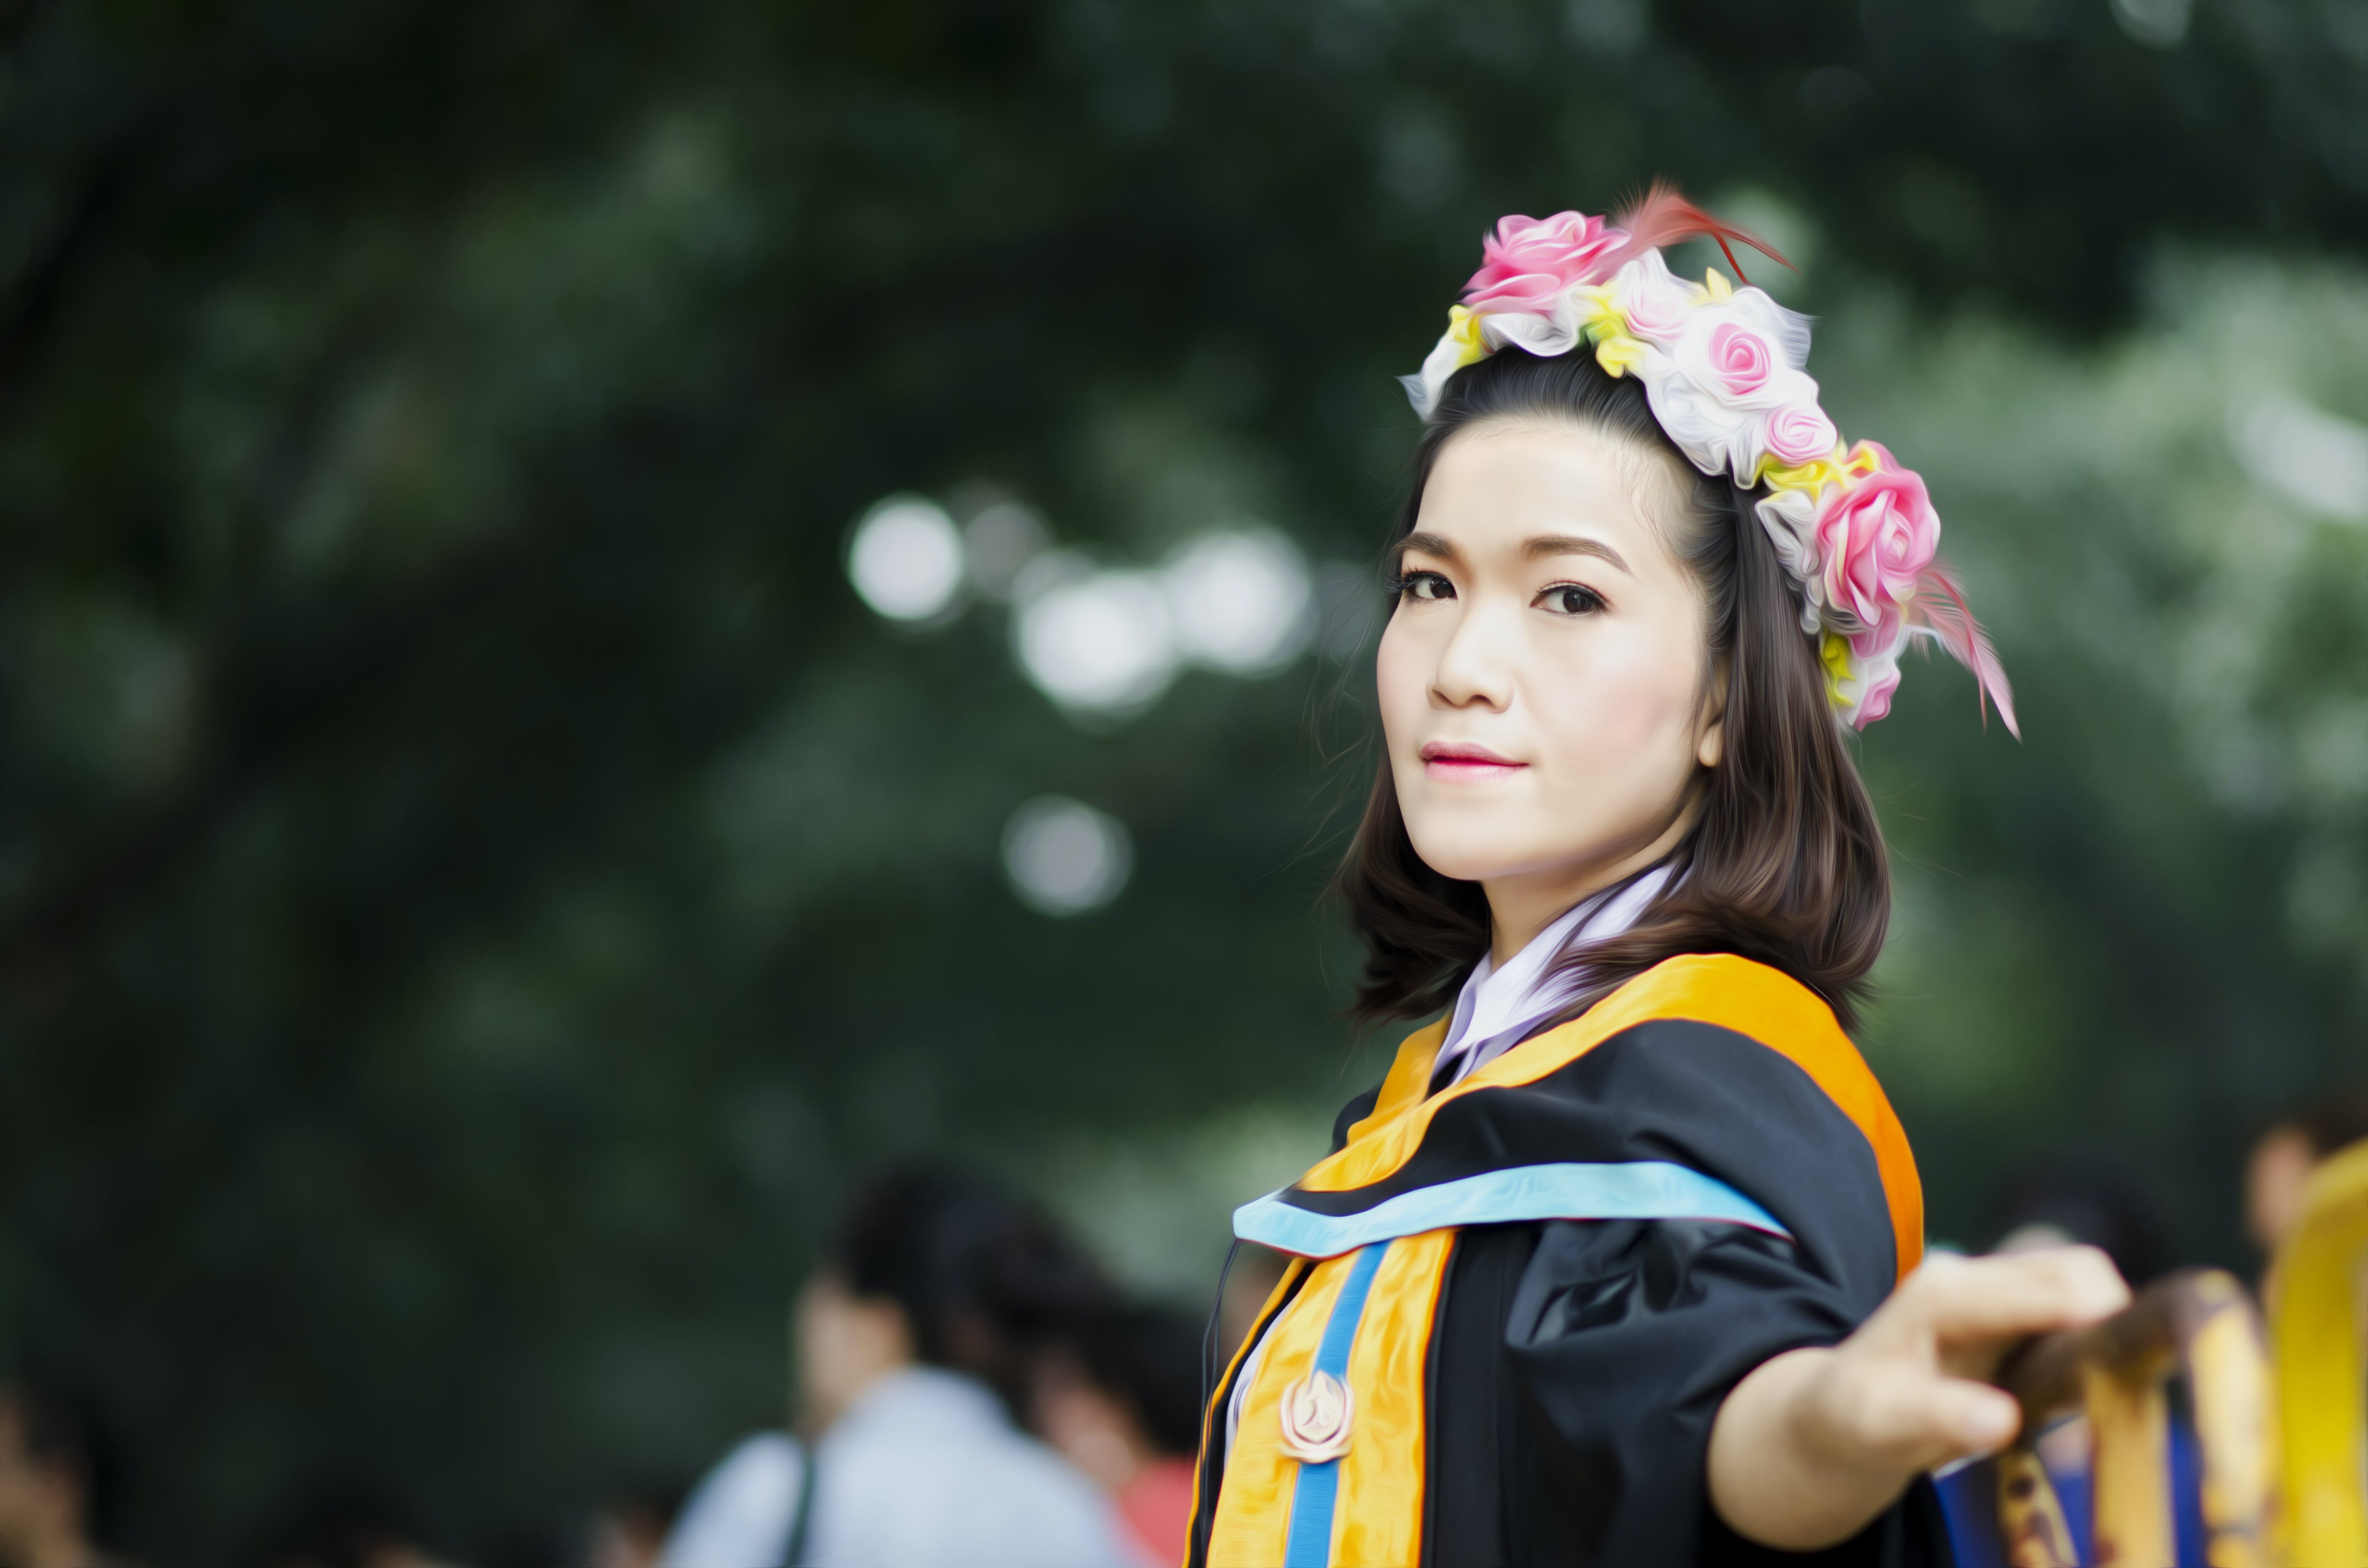 Selective Focus Photography of Woman Wearing Academic Gown Near Green Trees